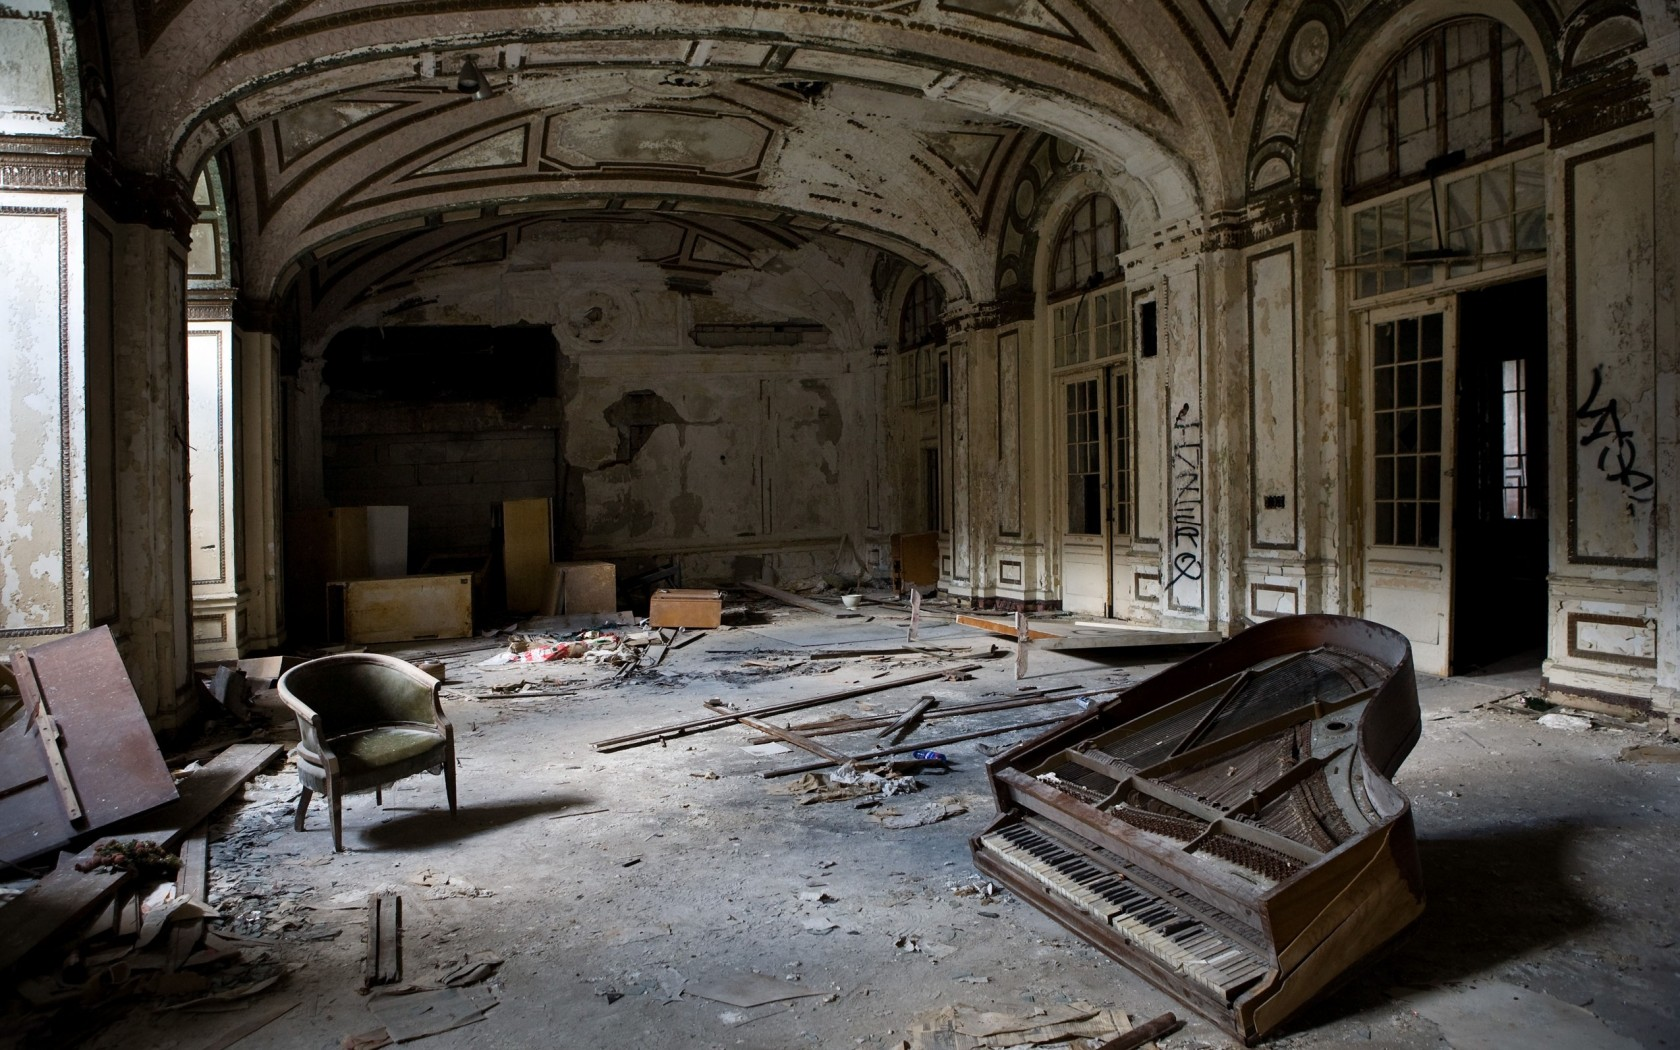 Visiting abandoned place sounds fun, eh?